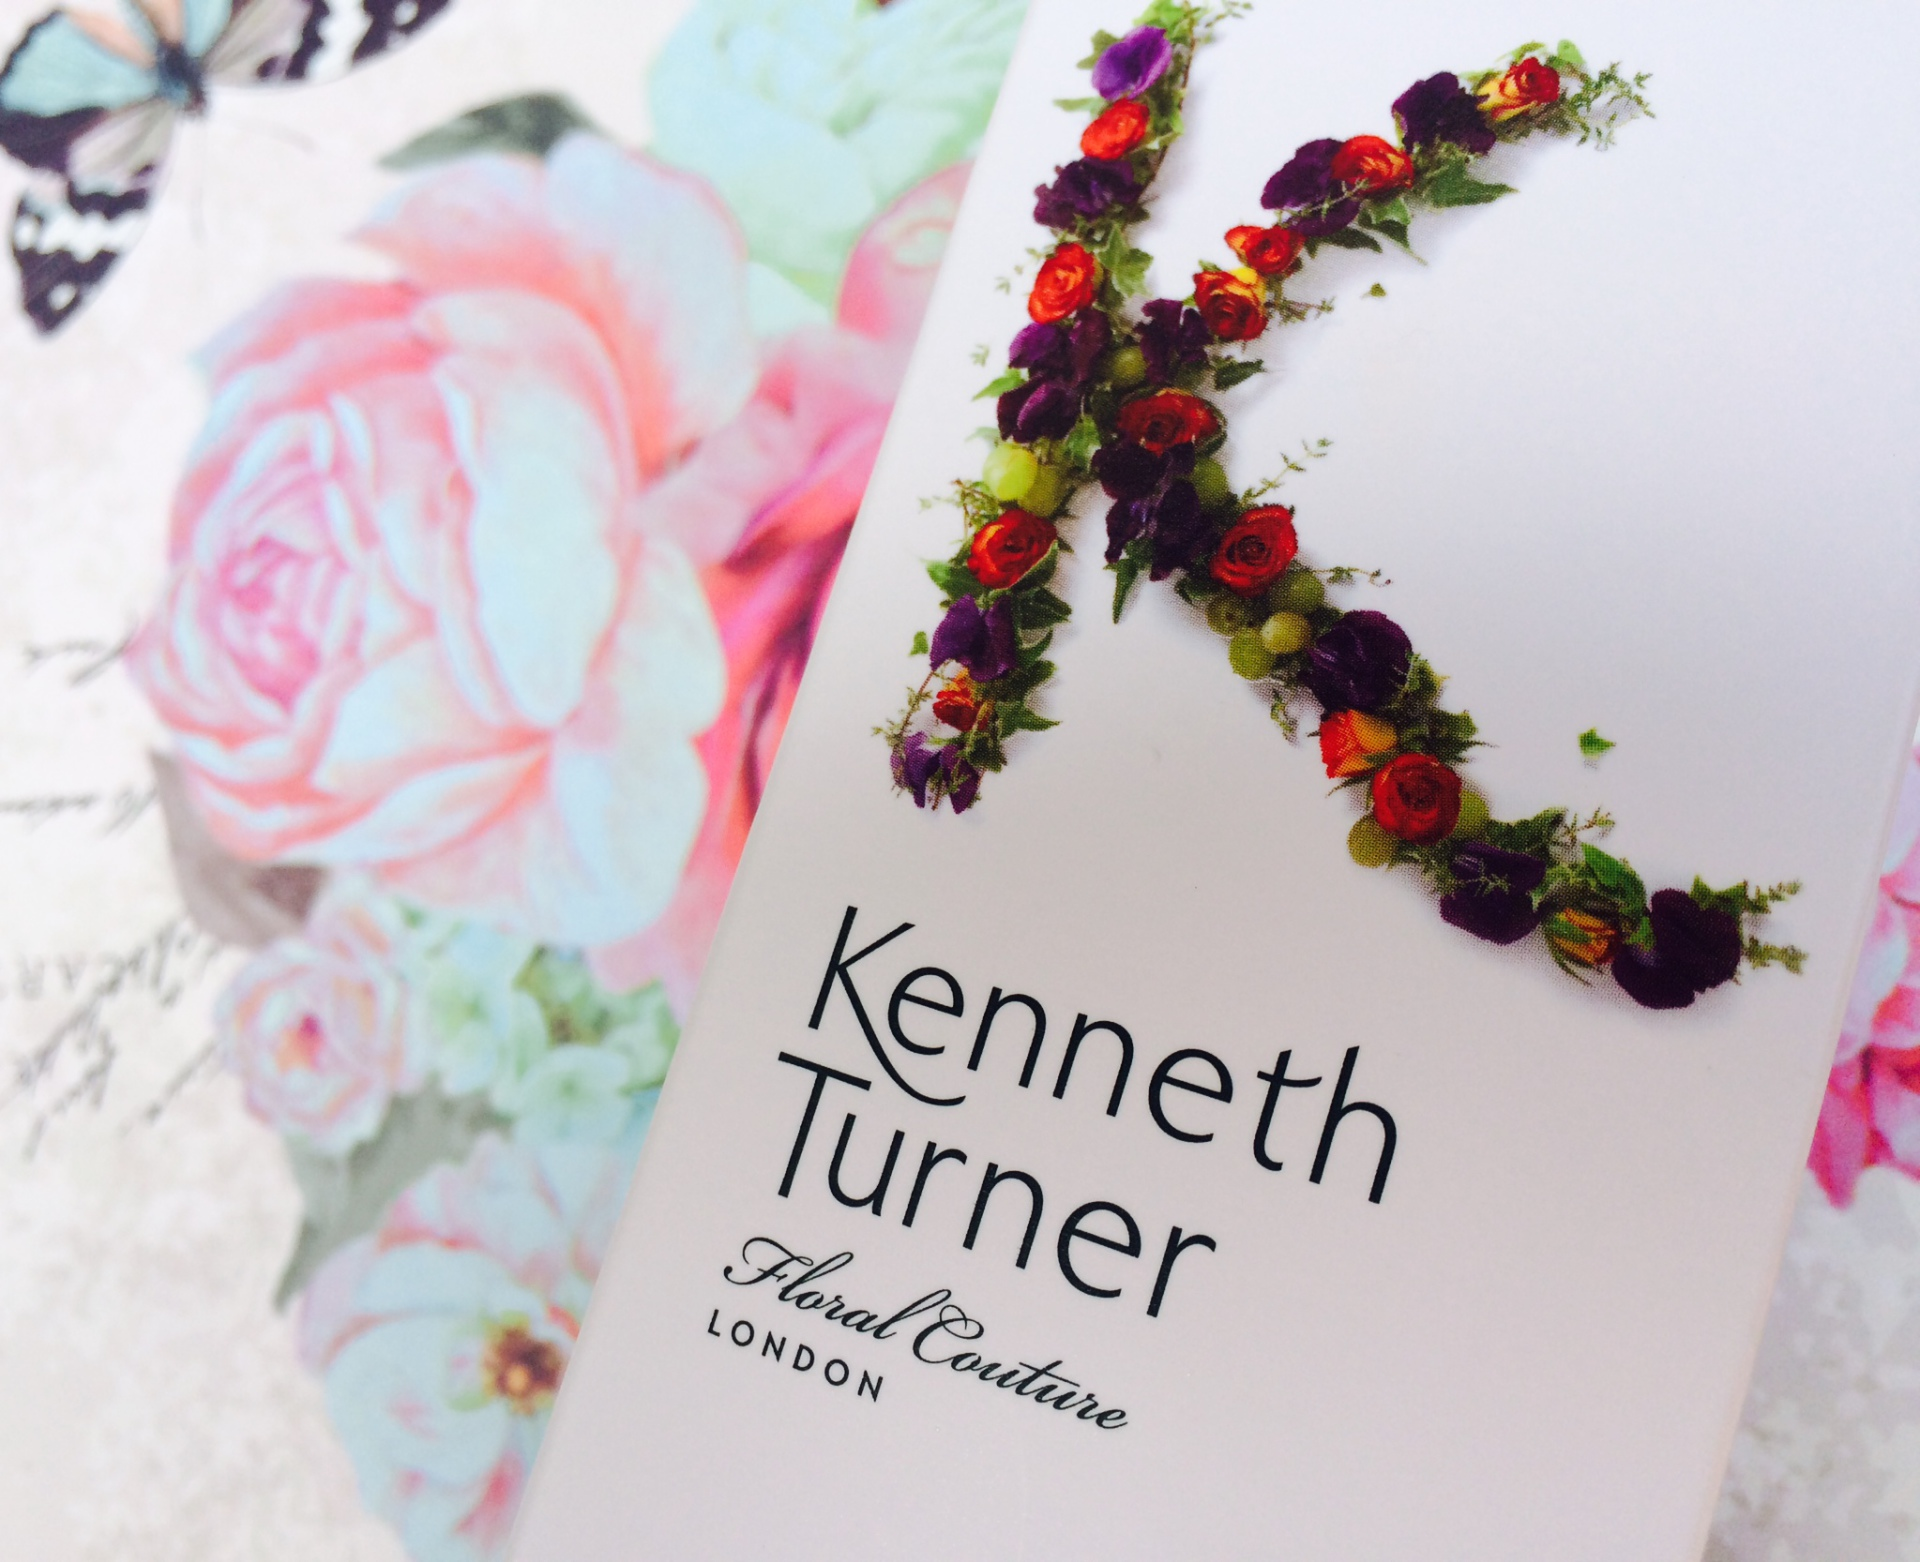 Kenneth Turner - Soiree Hand Cream